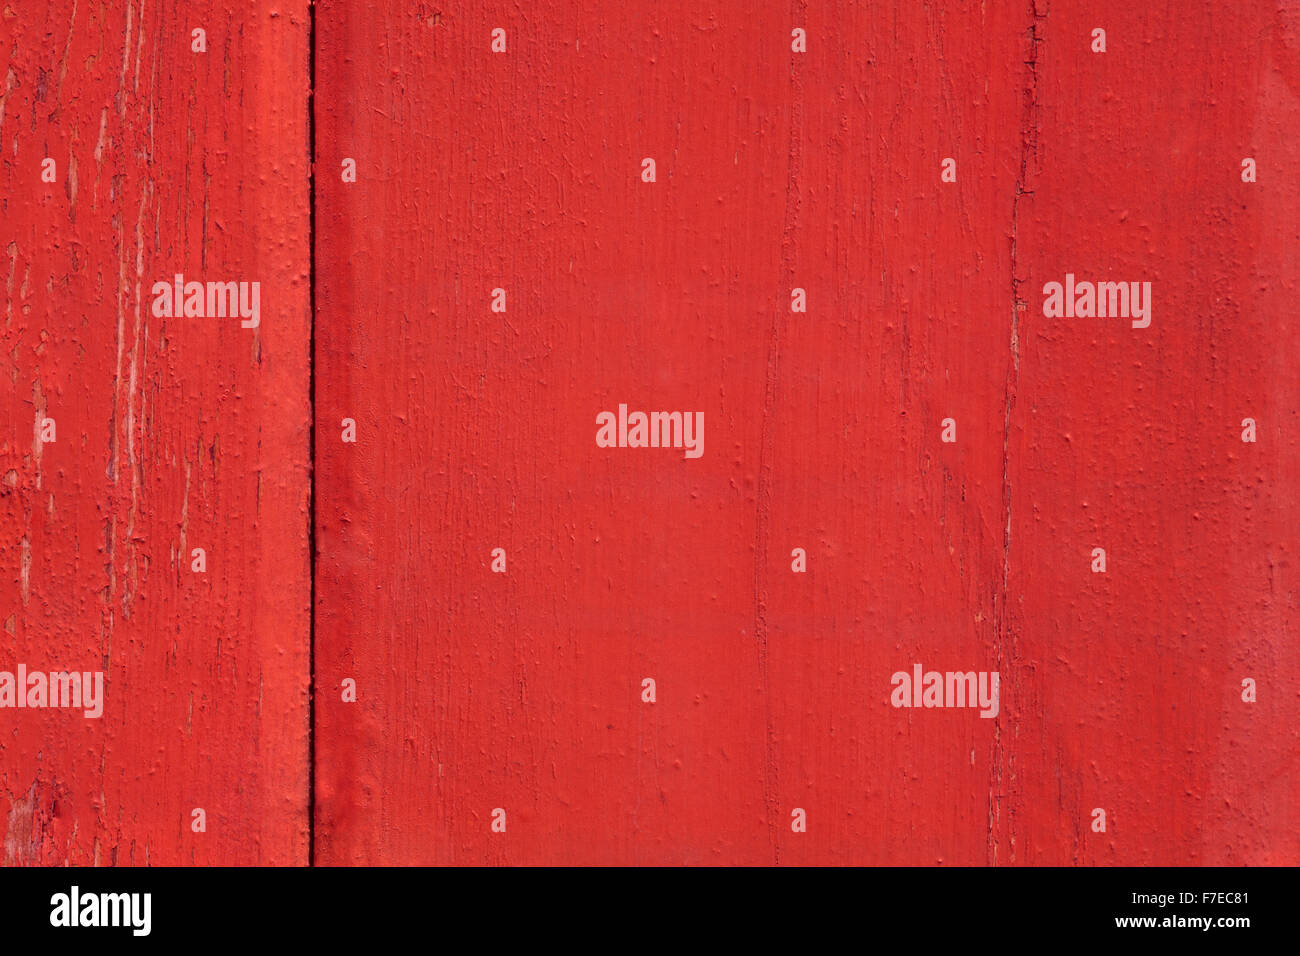 red wooden background or exfoliated paint wood texture - Stock Image